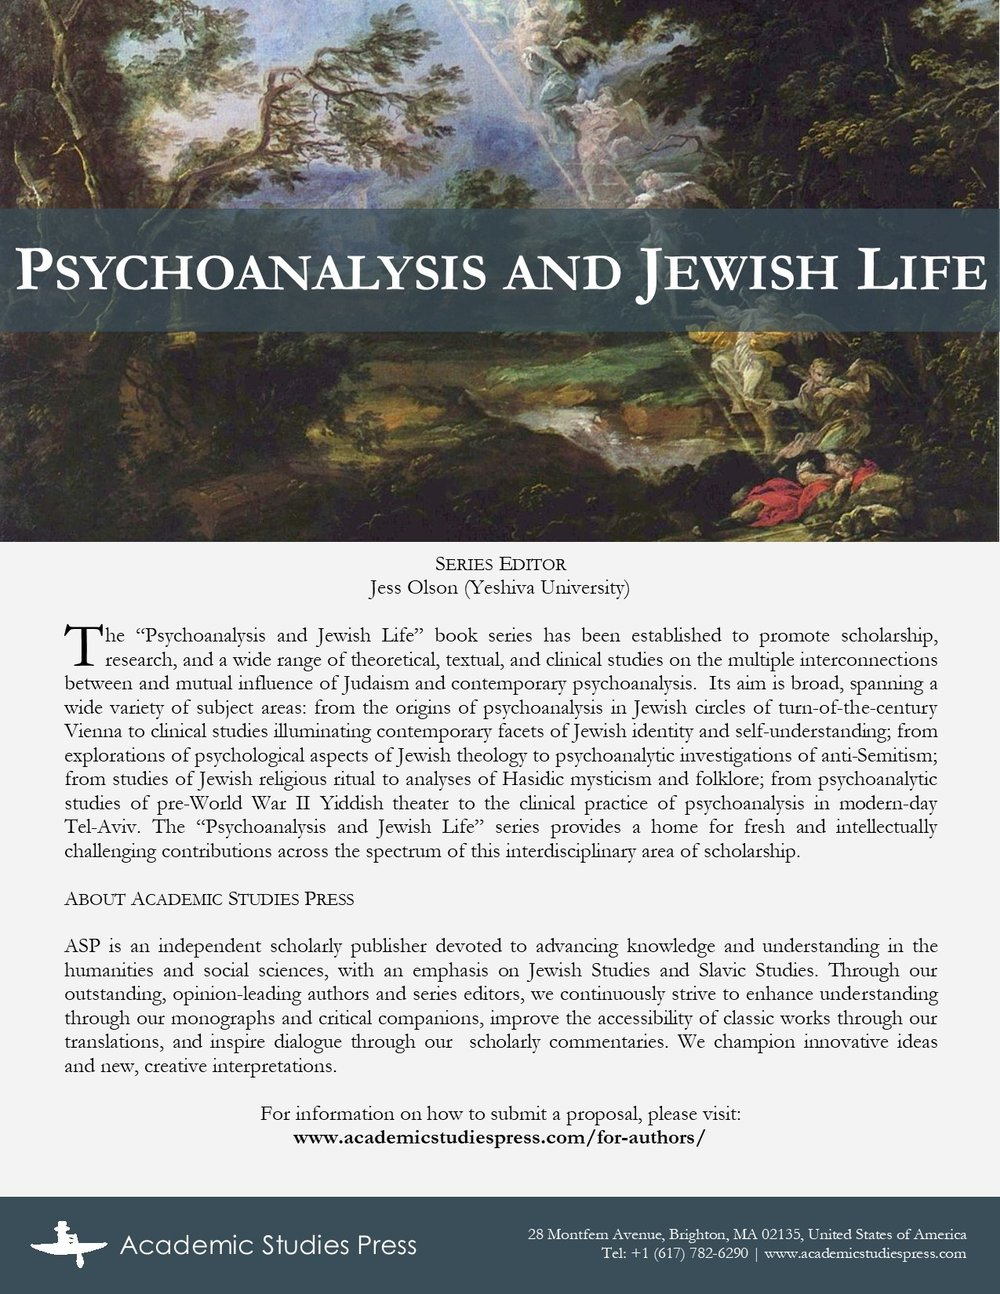 Psychoanalysis and Jewish Life Flyer.jpg